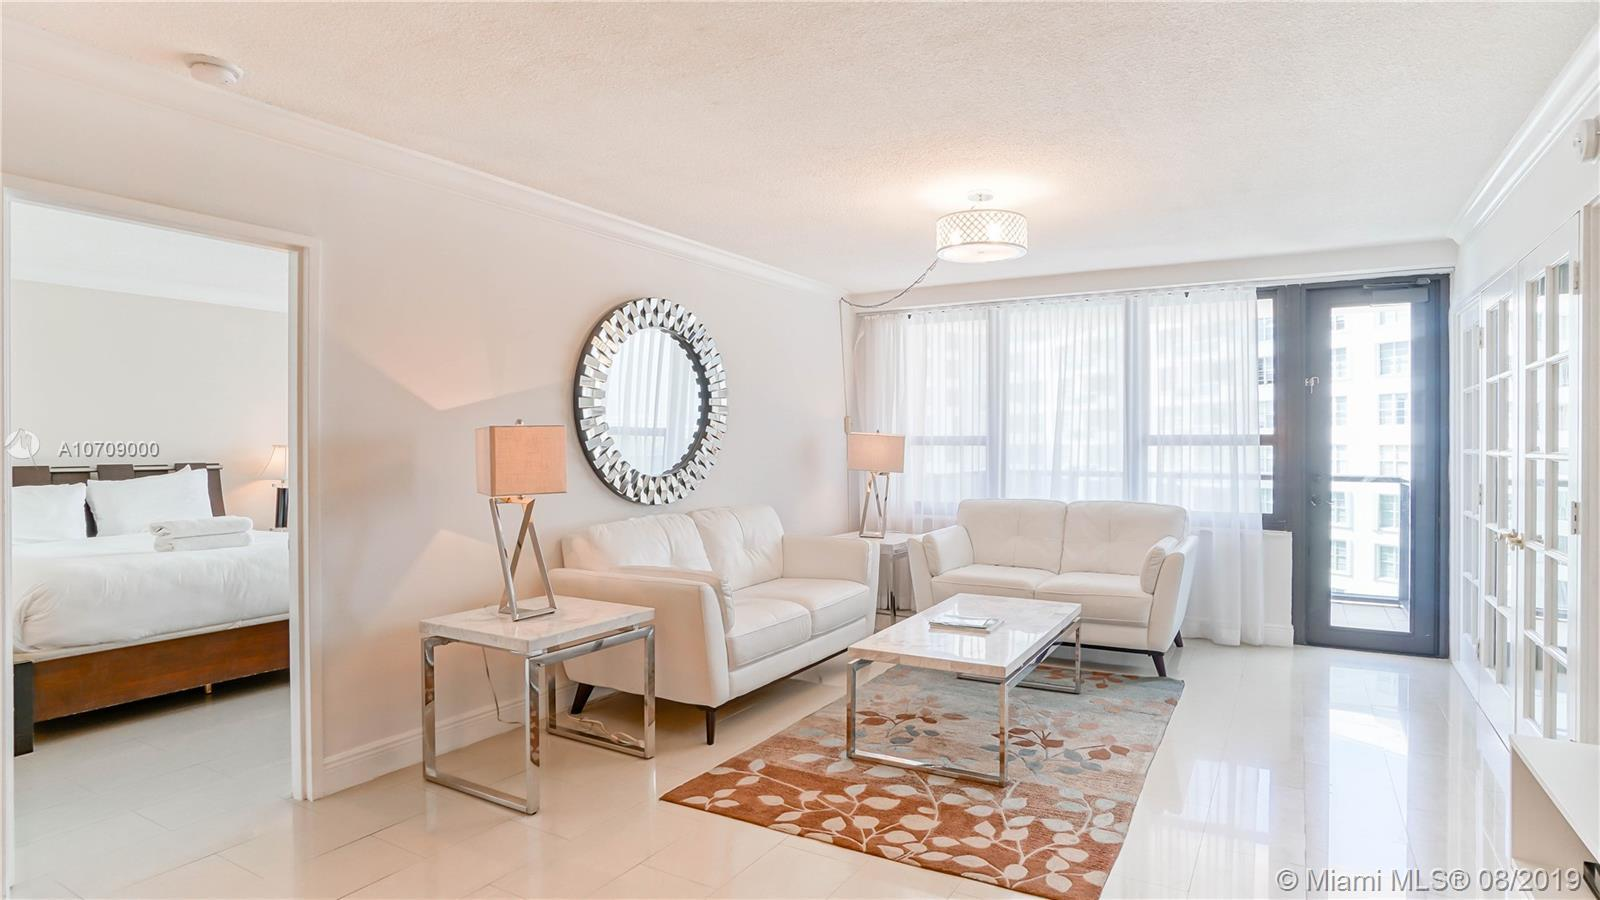 Fully remodeled and furnished luxurious 2/2 condo in the Heart of Millionaire Road, Collins Avenue.